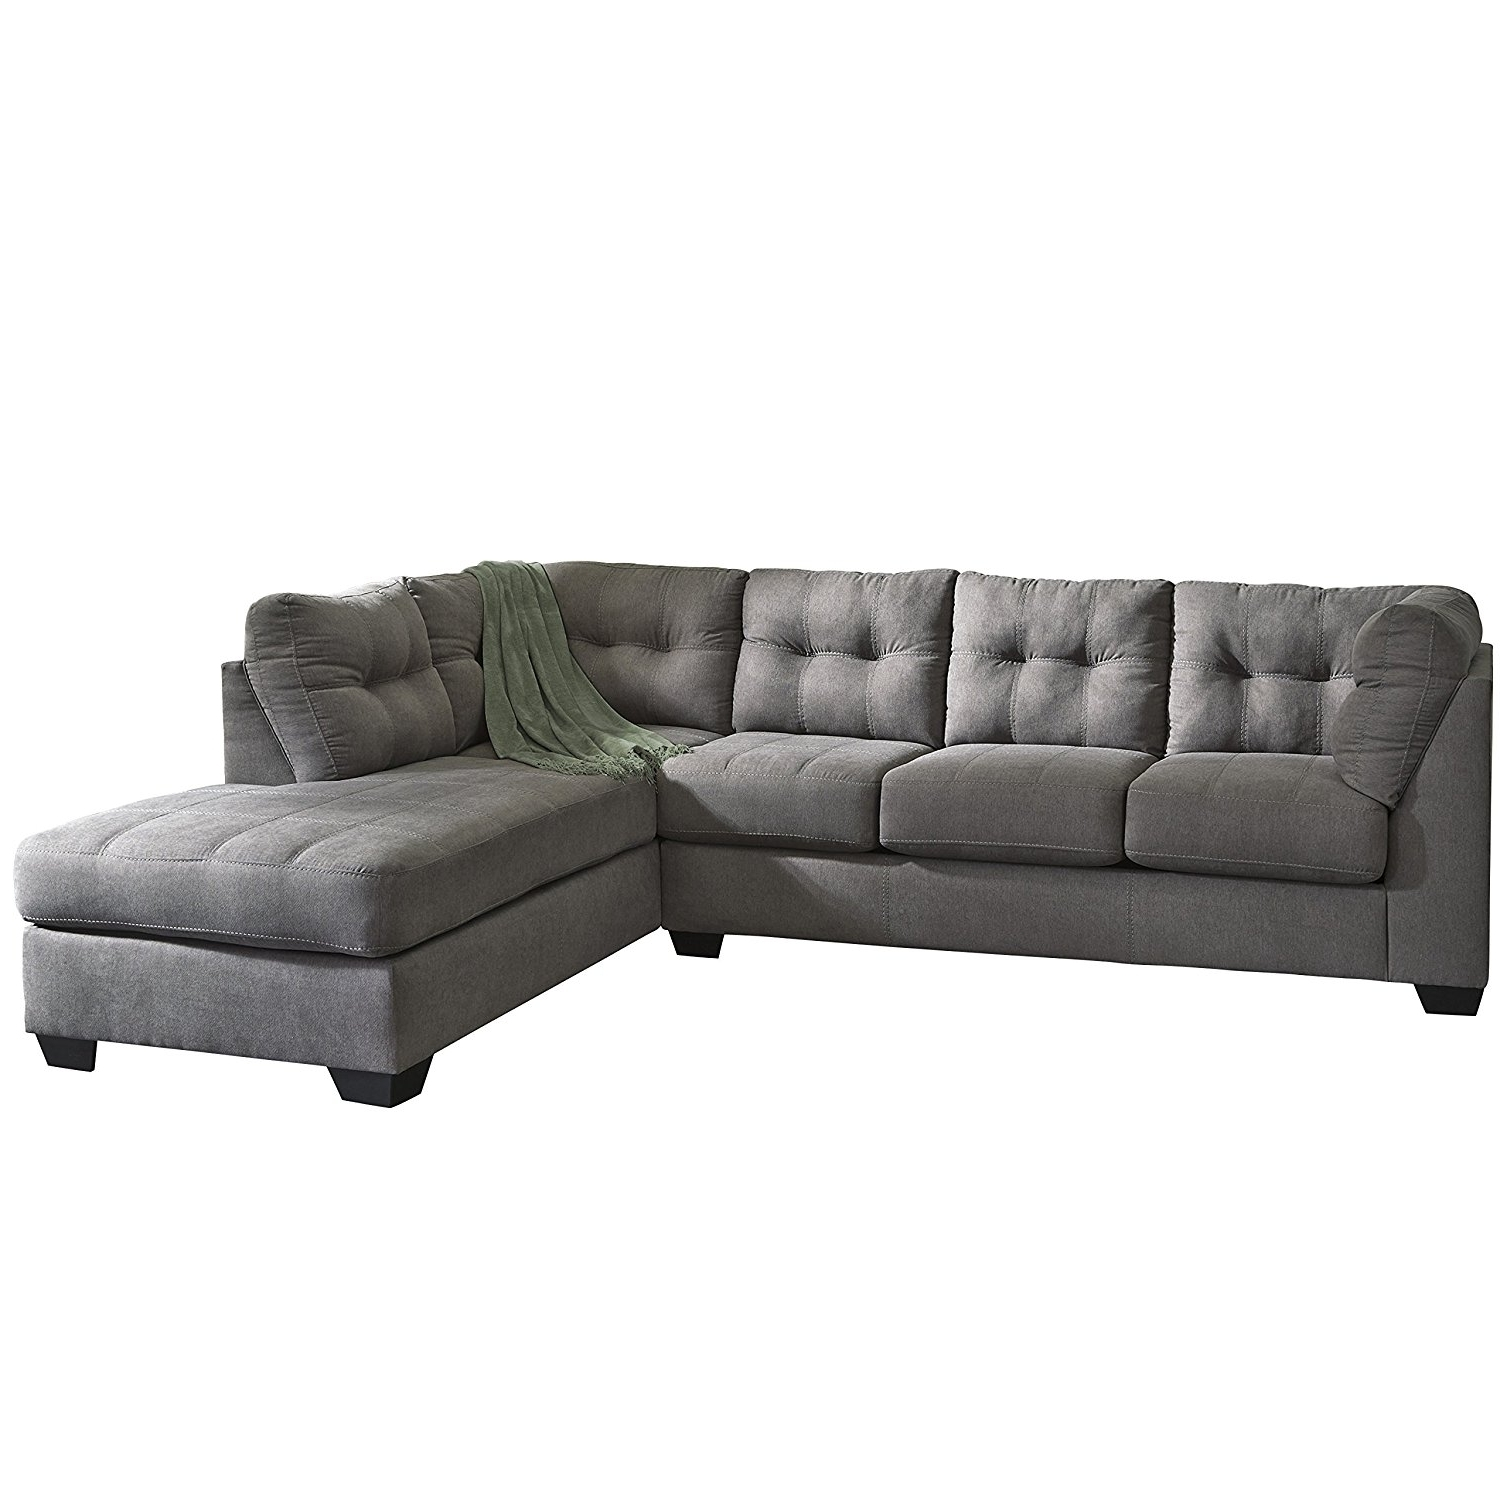 Latest Amazon: Flash Furniture Benchcraft Maier Sectional With Right Inside Right Facing Chaise Sectionals (View 2 of 15)